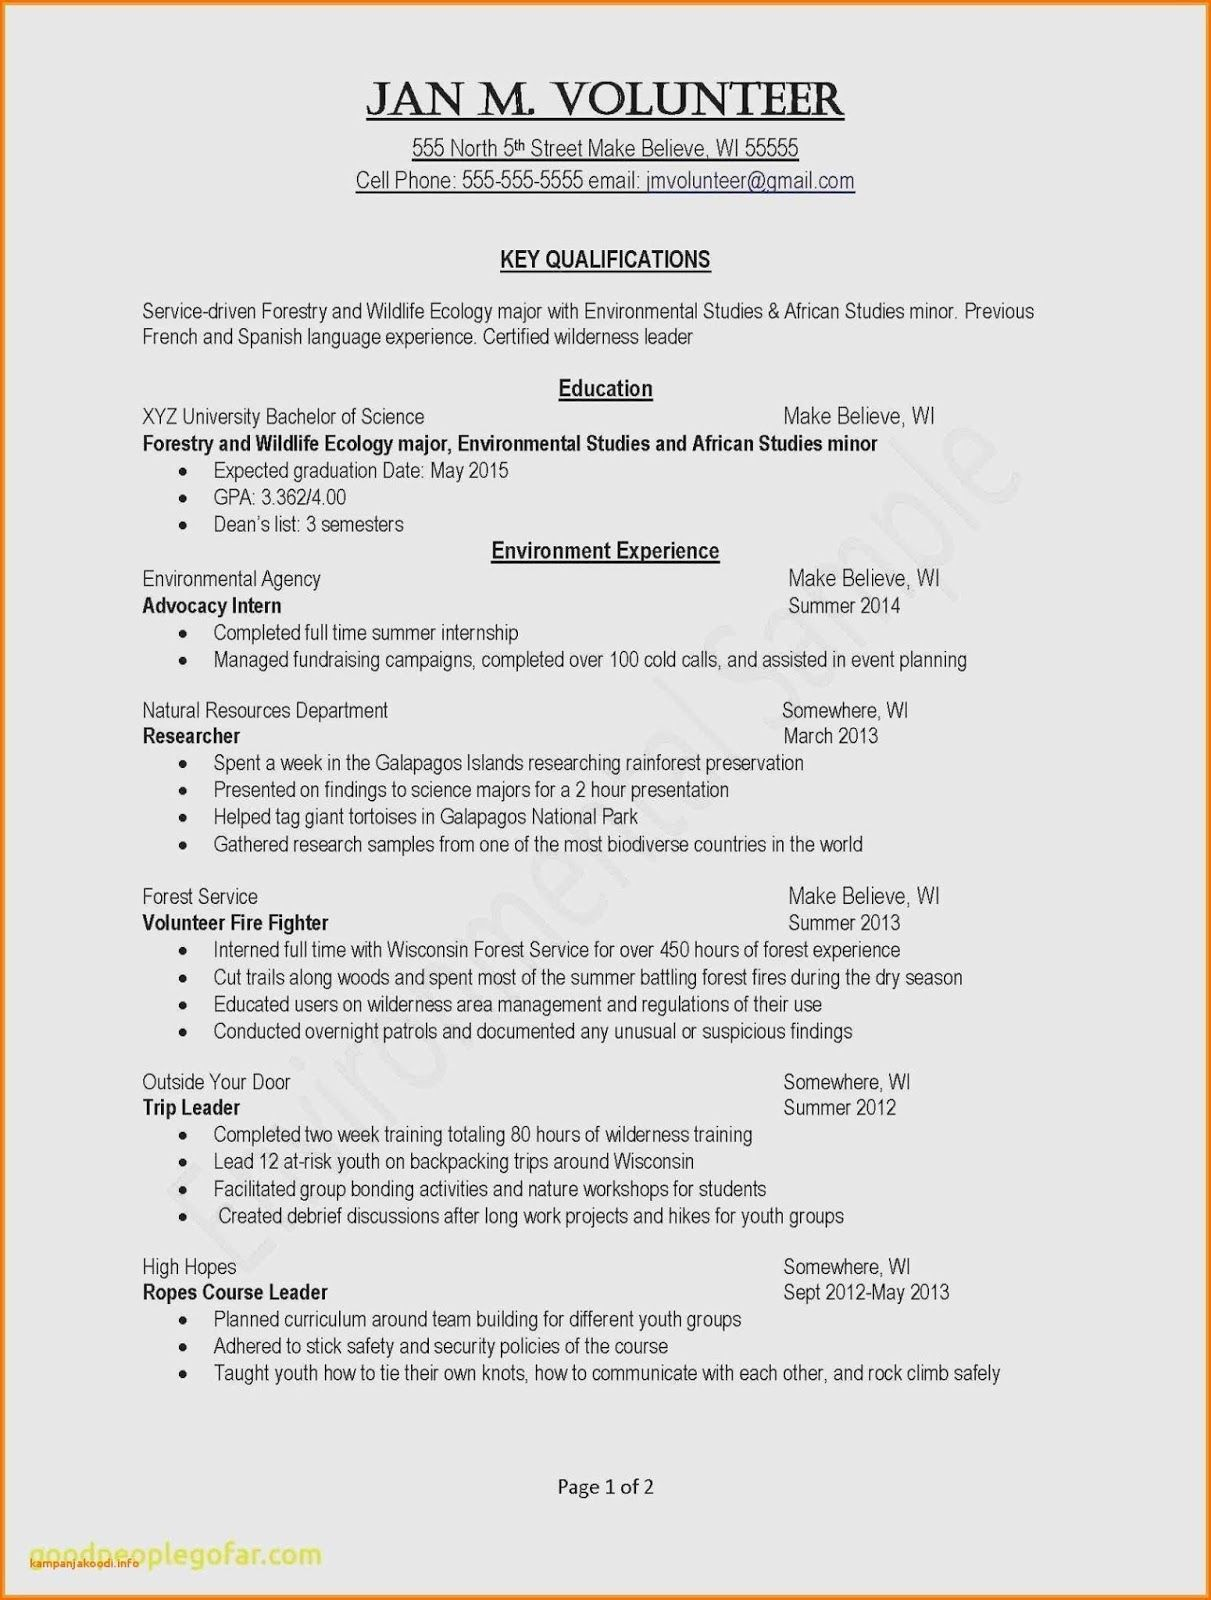 Simple Resumes Examples Examples Of Basic Resumes For Jobs Basic Examples Of Resumes Simple Resume Exampl Teacher Resume Examples Resume Examples Resume Skills